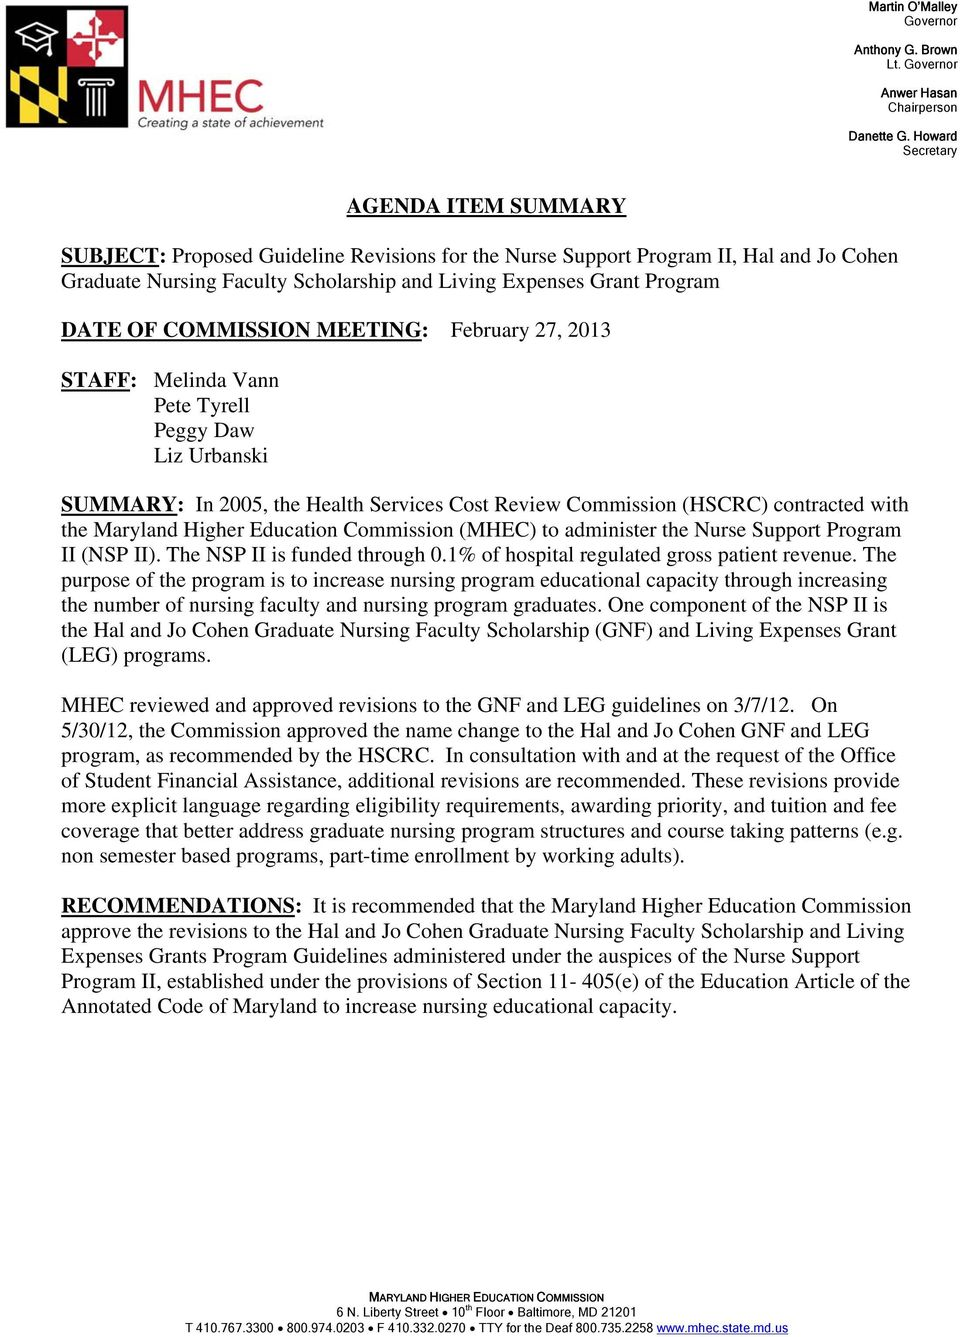 DATE OF COMMISSION MEETING: February 27, 2013 STAFF: Melinda Vann Pete Tyrell Peggy Daw Liz Urbanski SUMMARY: In 2005, the Health Services Cost Review Commission (HSCRC) contracted with the Maryland